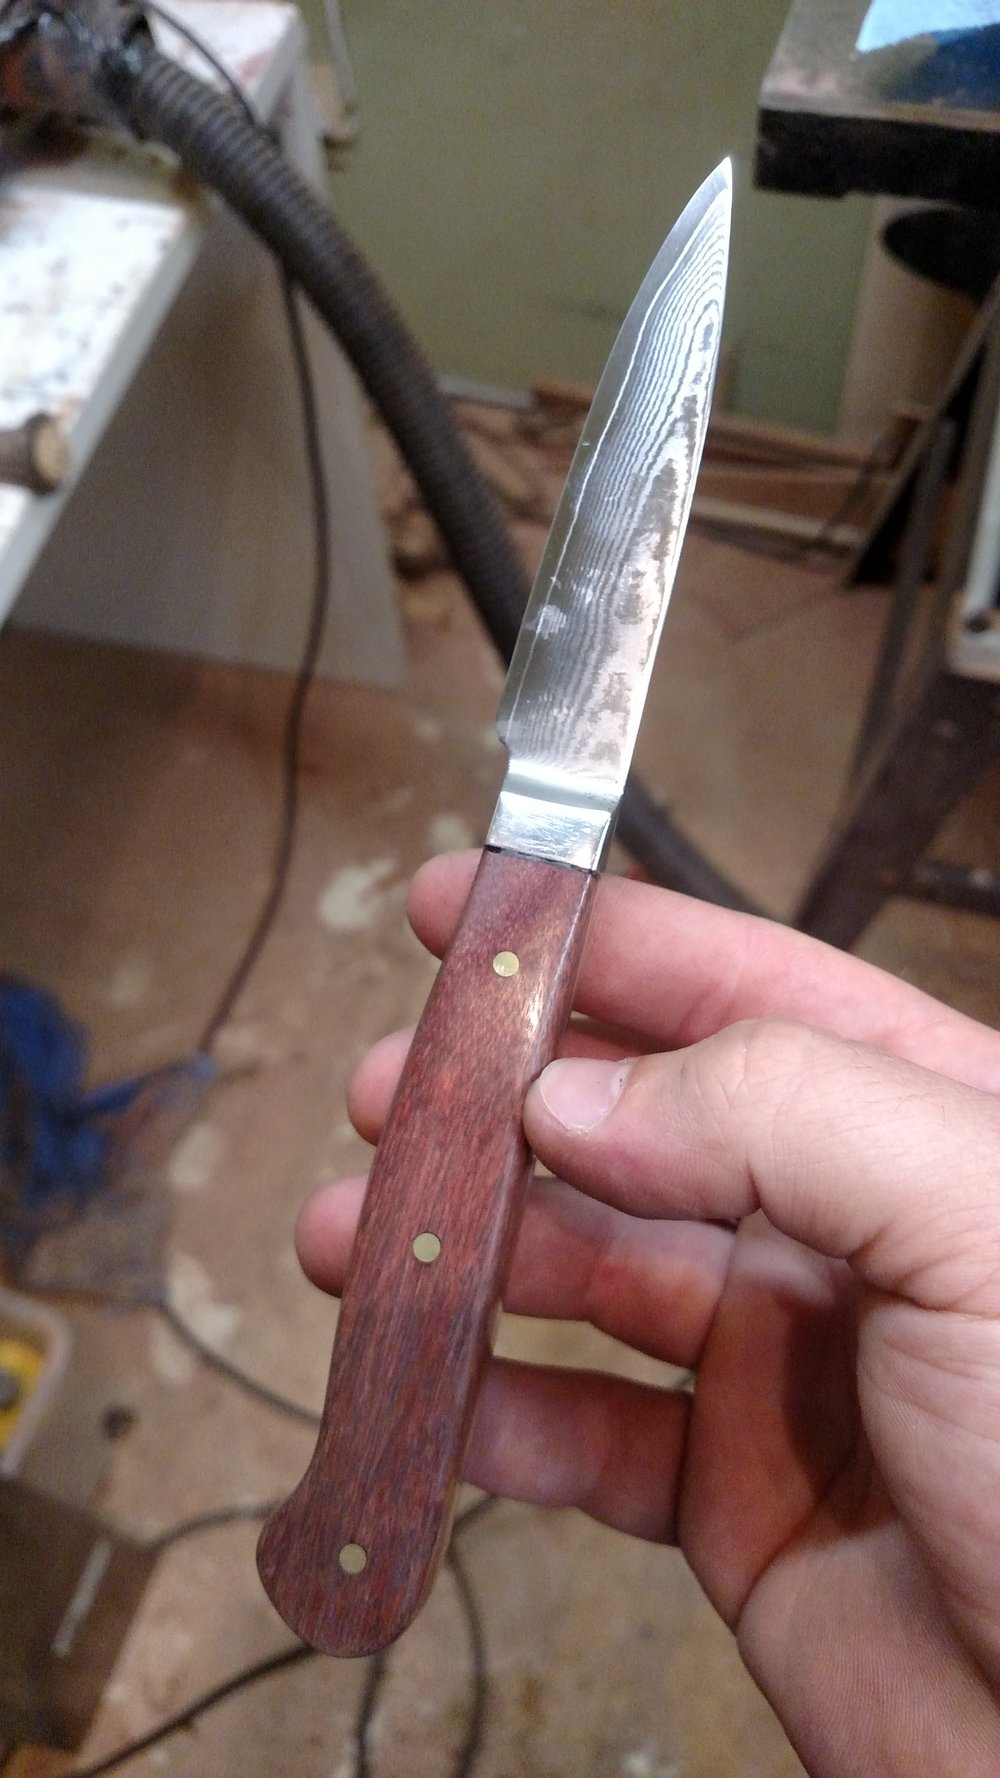 The finished paring knife for my moms birthday present.